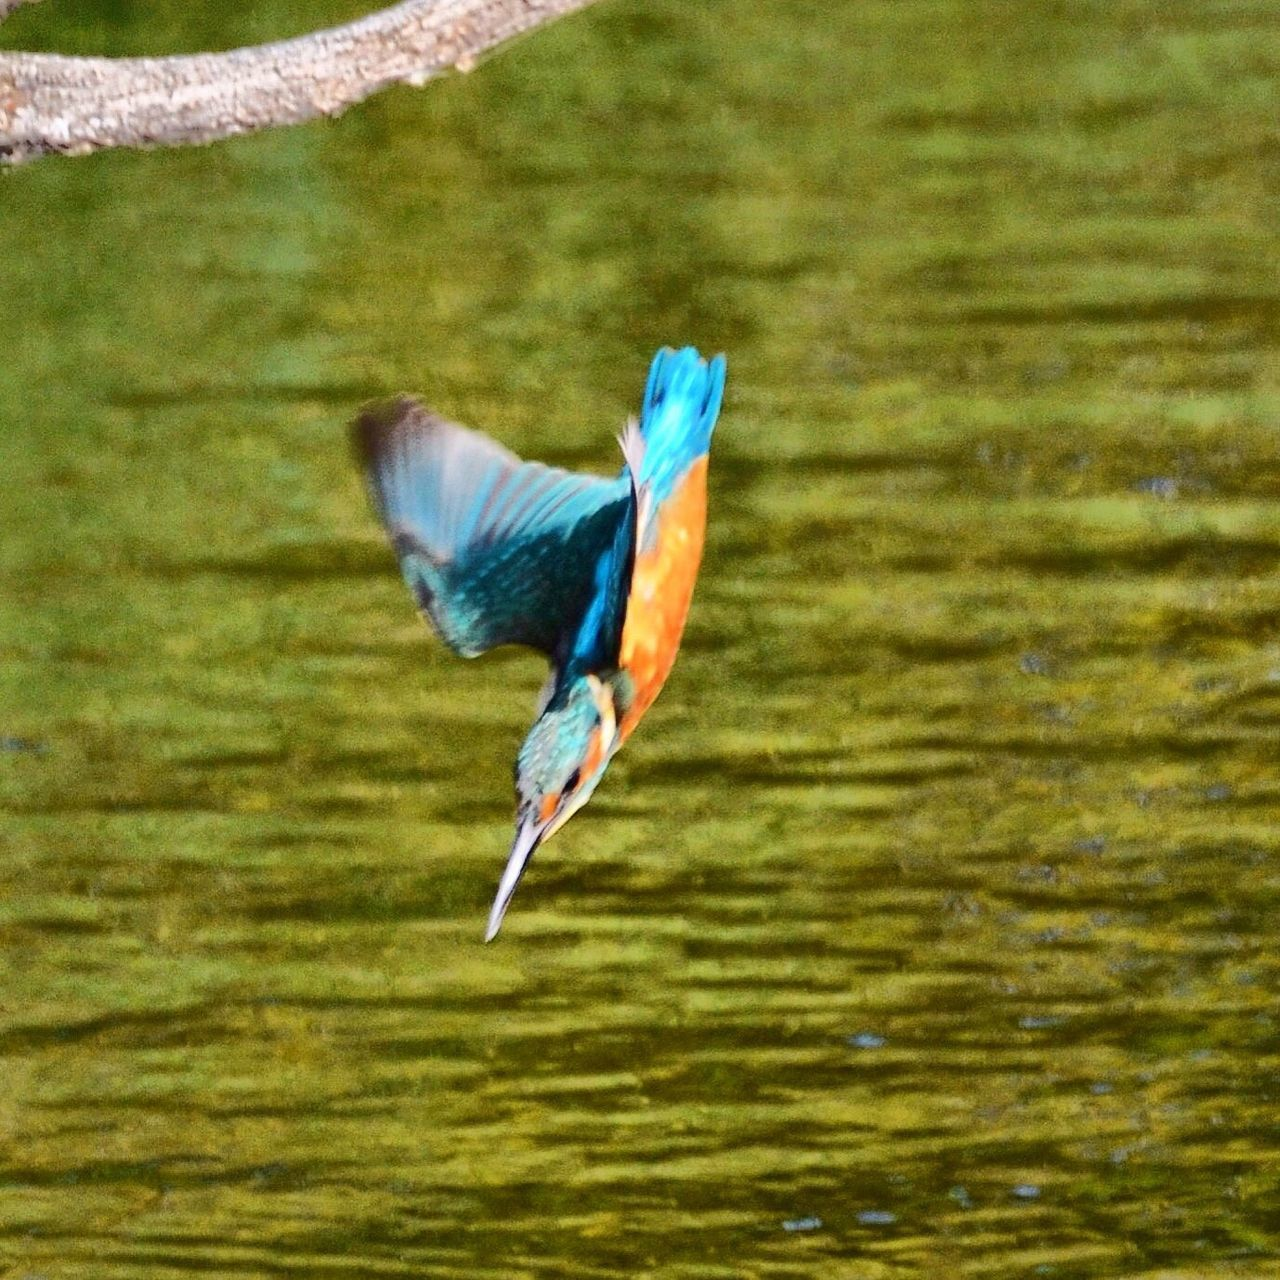 one animal, bird, animal themes, animals in the wild, animal wildlife, nature, no people, day, beak, spread wings, kingfisher, water, outdoors, close-up, flying, beauty in nature